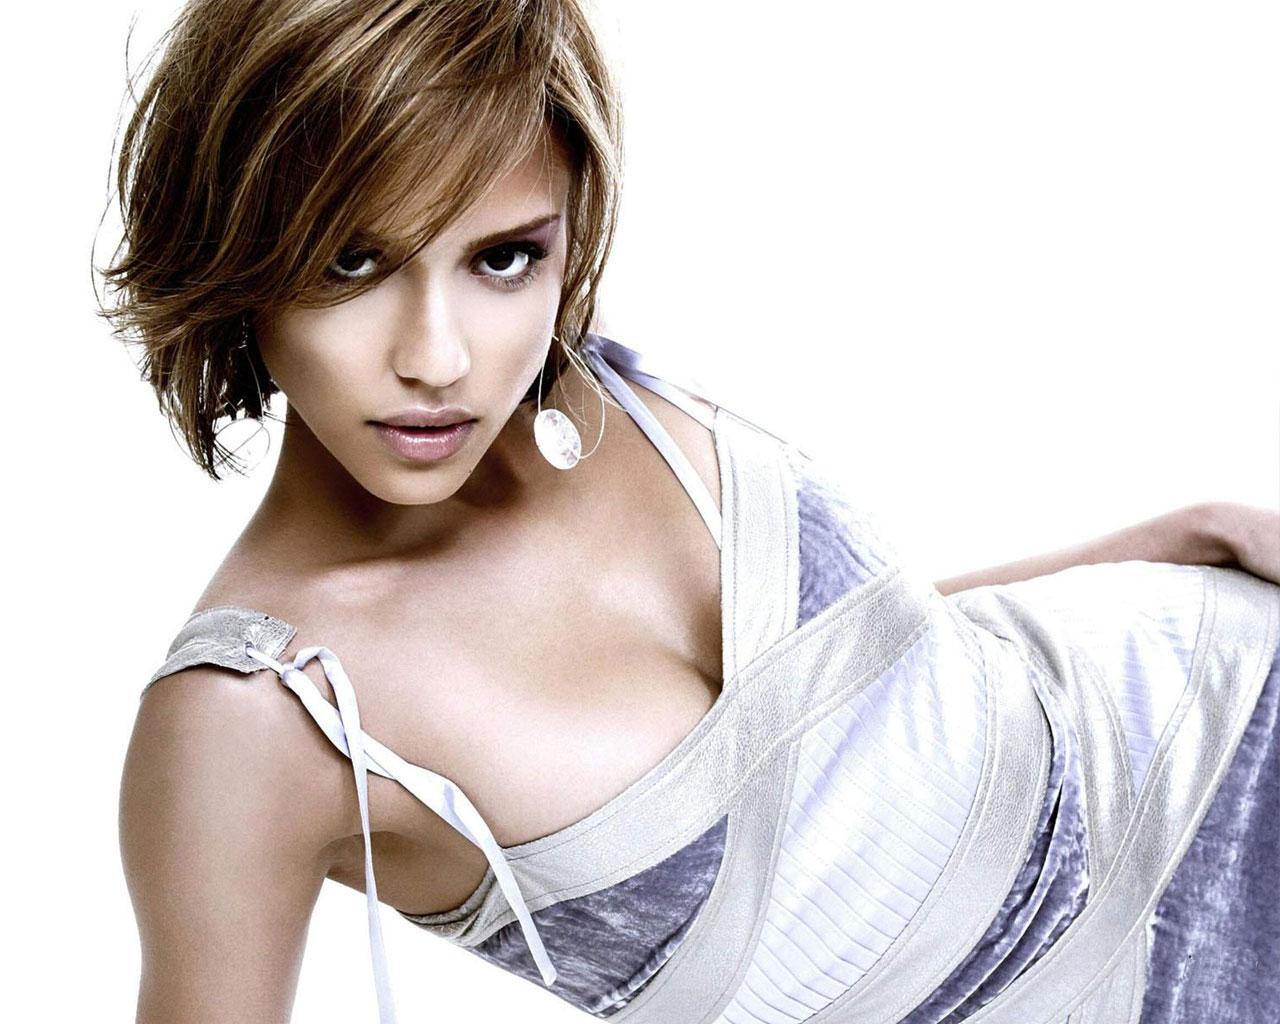 Jessica Alba -  Wallpaper #2 1280 x 1024